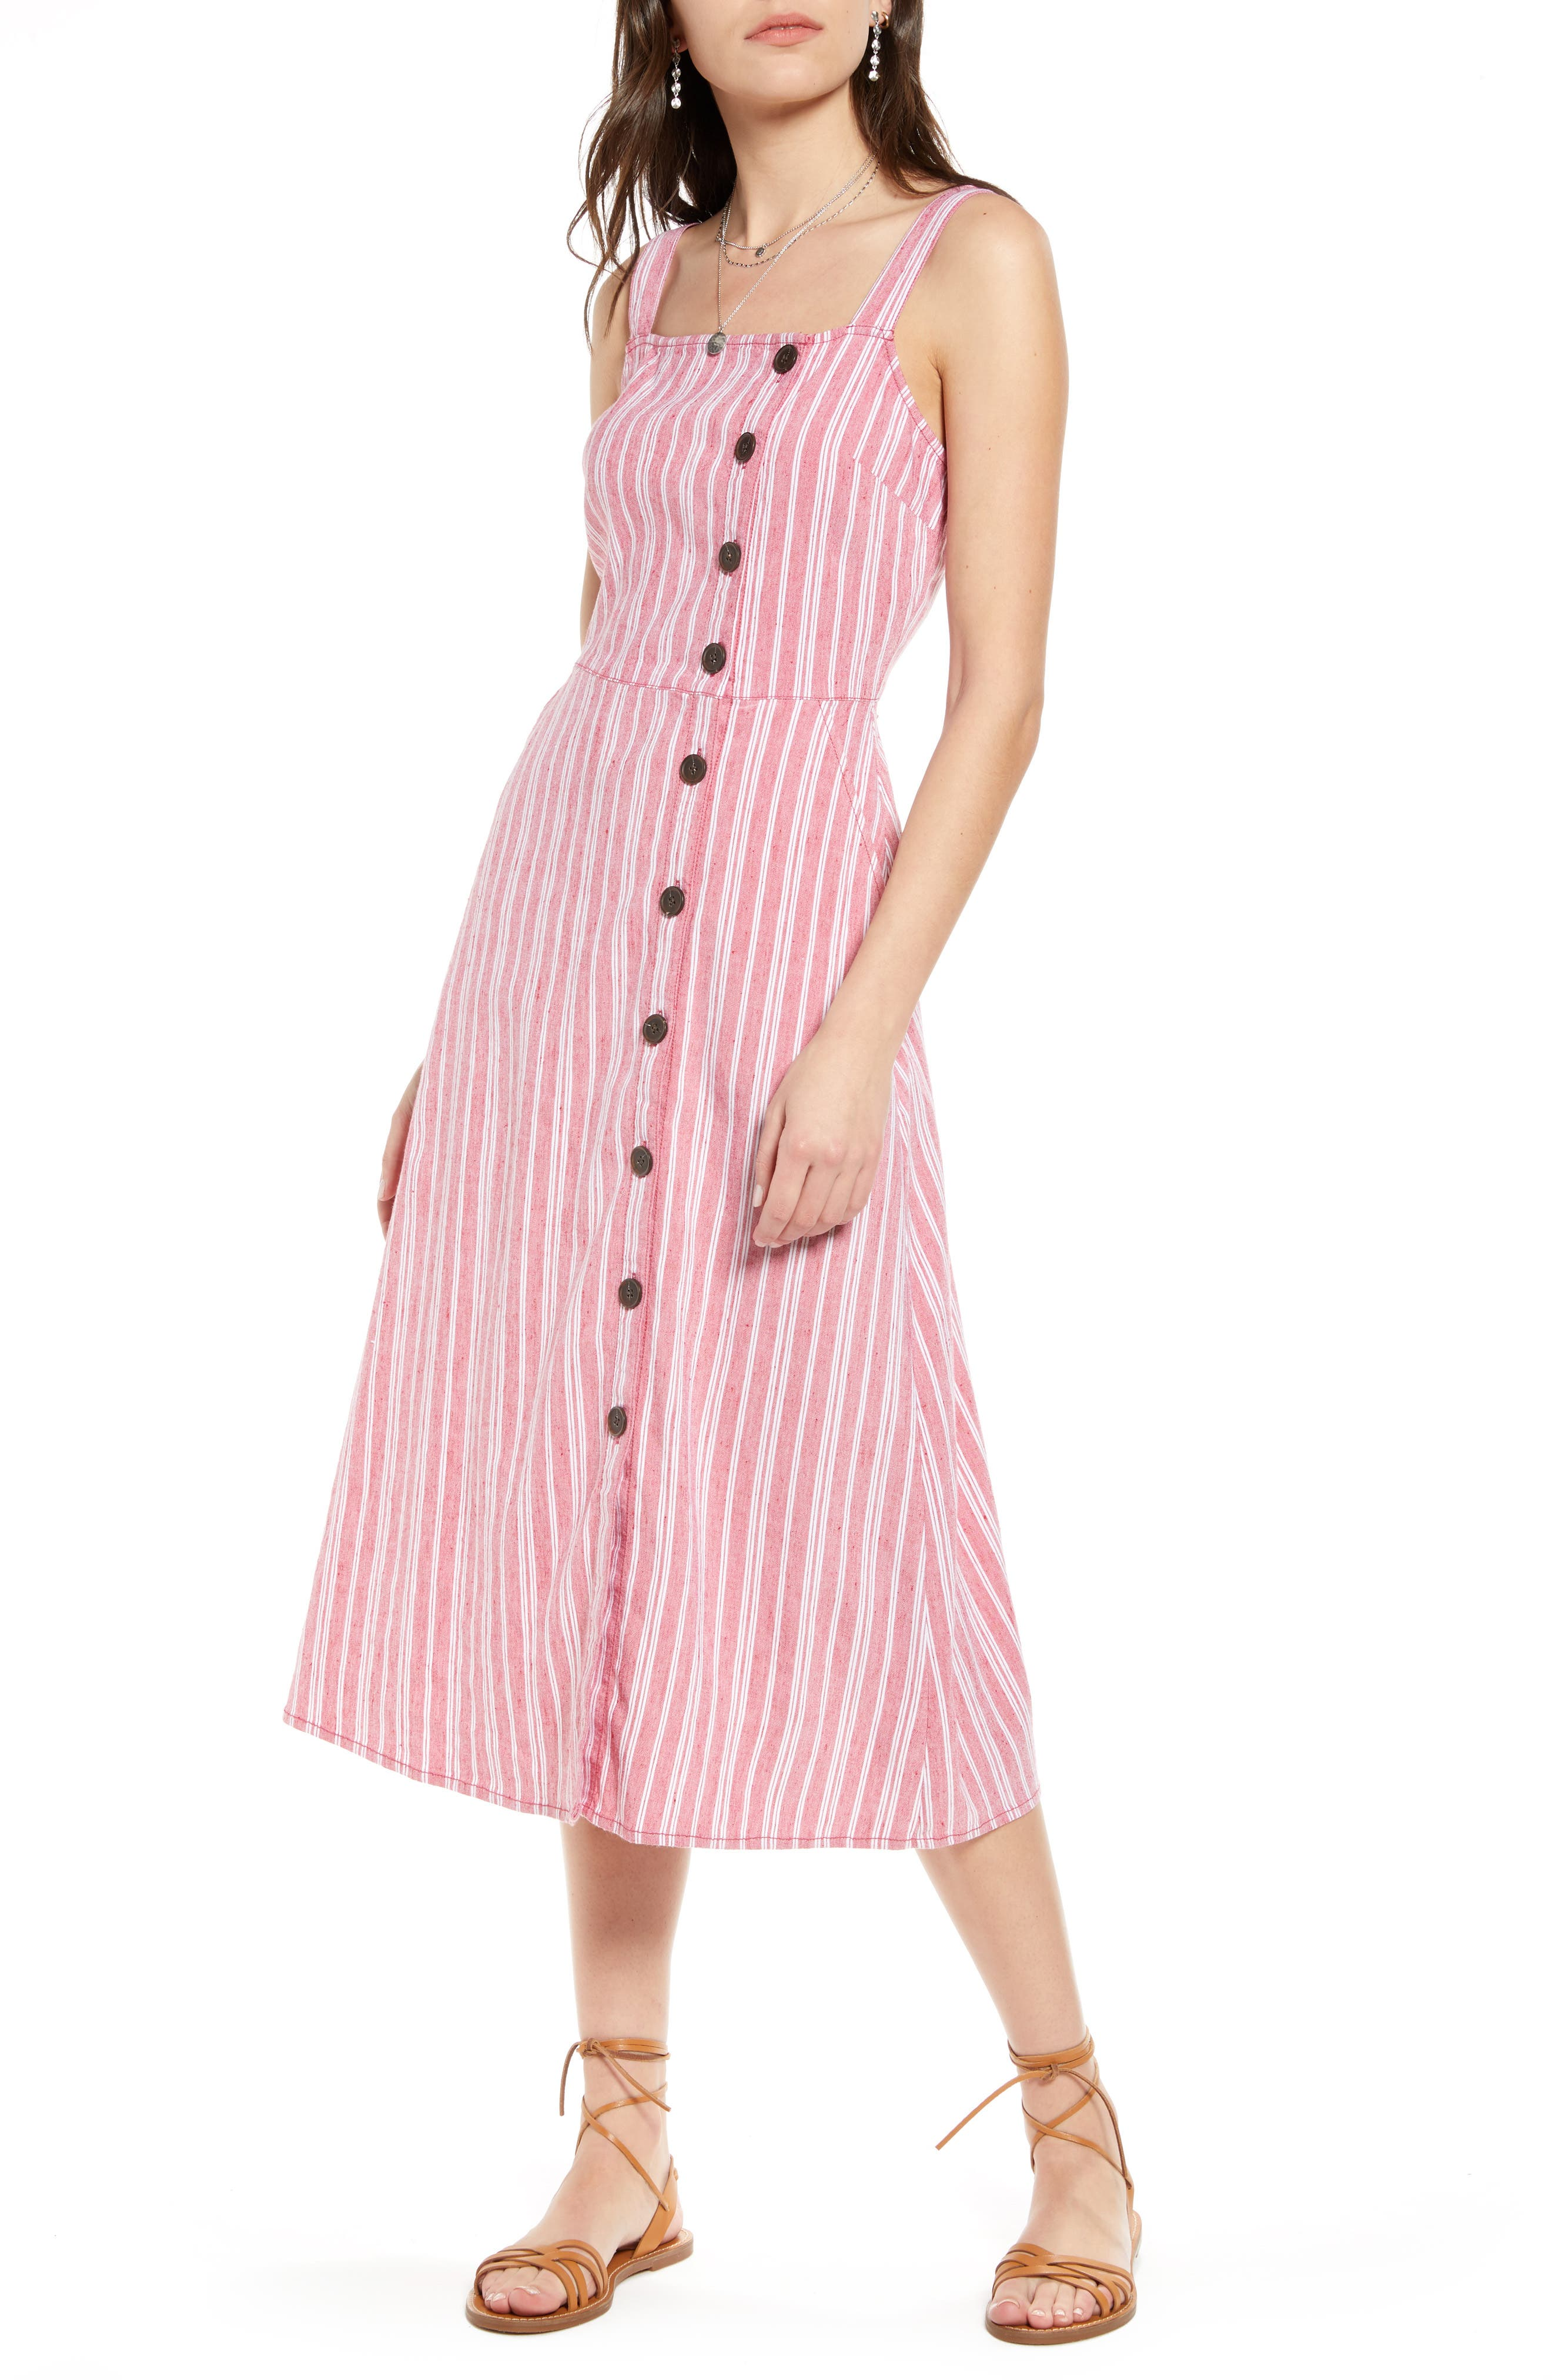 This striped sleeveless dress is styled with an off-center row of buttons and shaped from soft and refreshing linen-blend fabric. When you buy Treasure & Bond, Nordstrom will donate 2.5% of net sales to organizations that work to empower youth. Style Name: Treasure & Bond Asymmetrical Button Linen Blend Midi Dress. Style Number: 5963655. Available in stores.